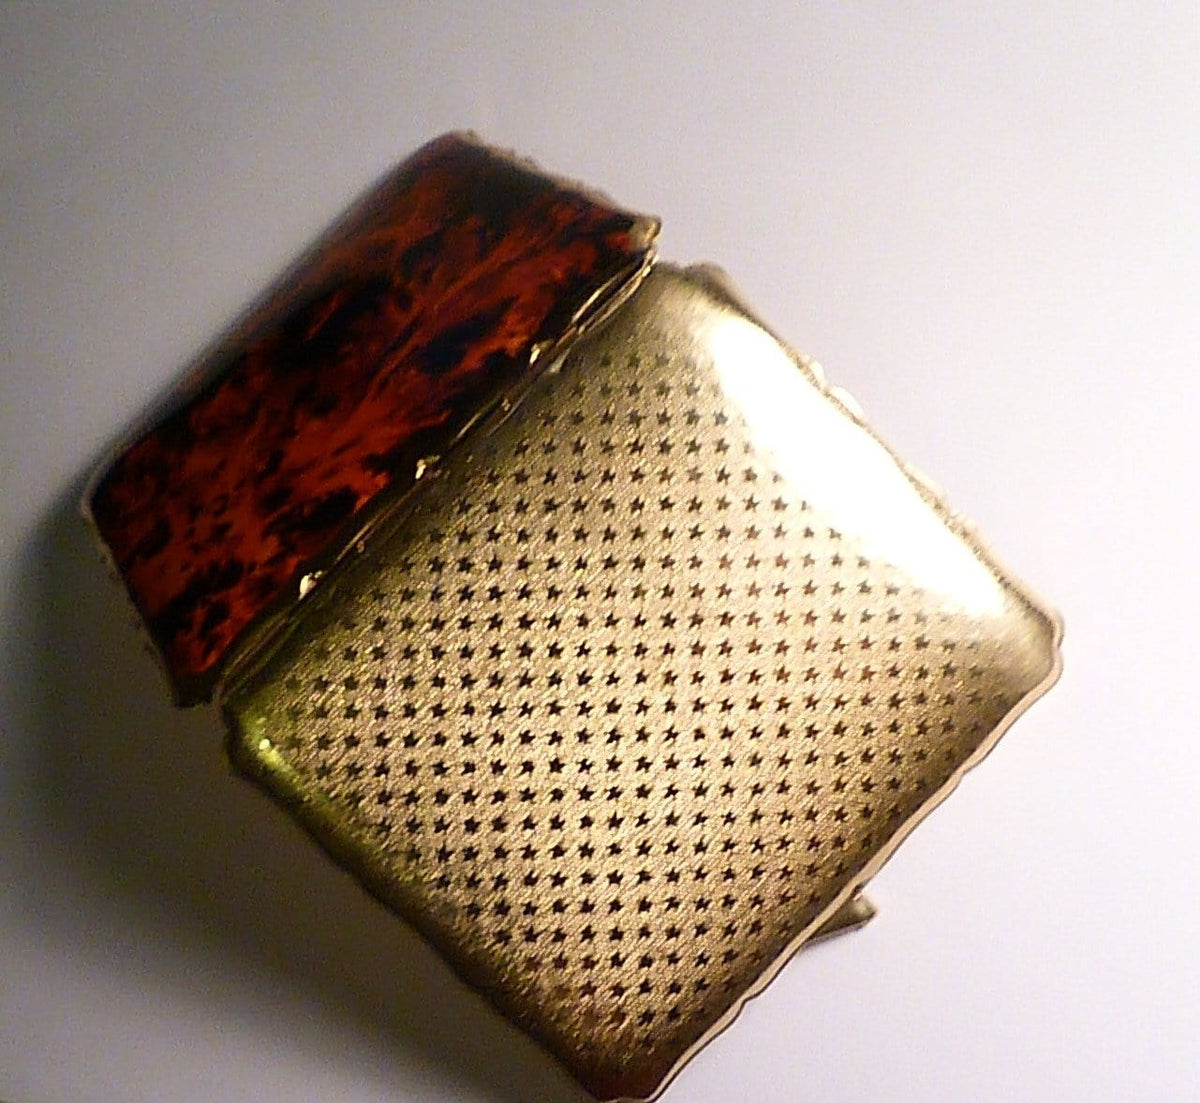 Rare flame red and black enamel vintage Stratton cigarette case 1950s business card case - The Vintage Compact Shop